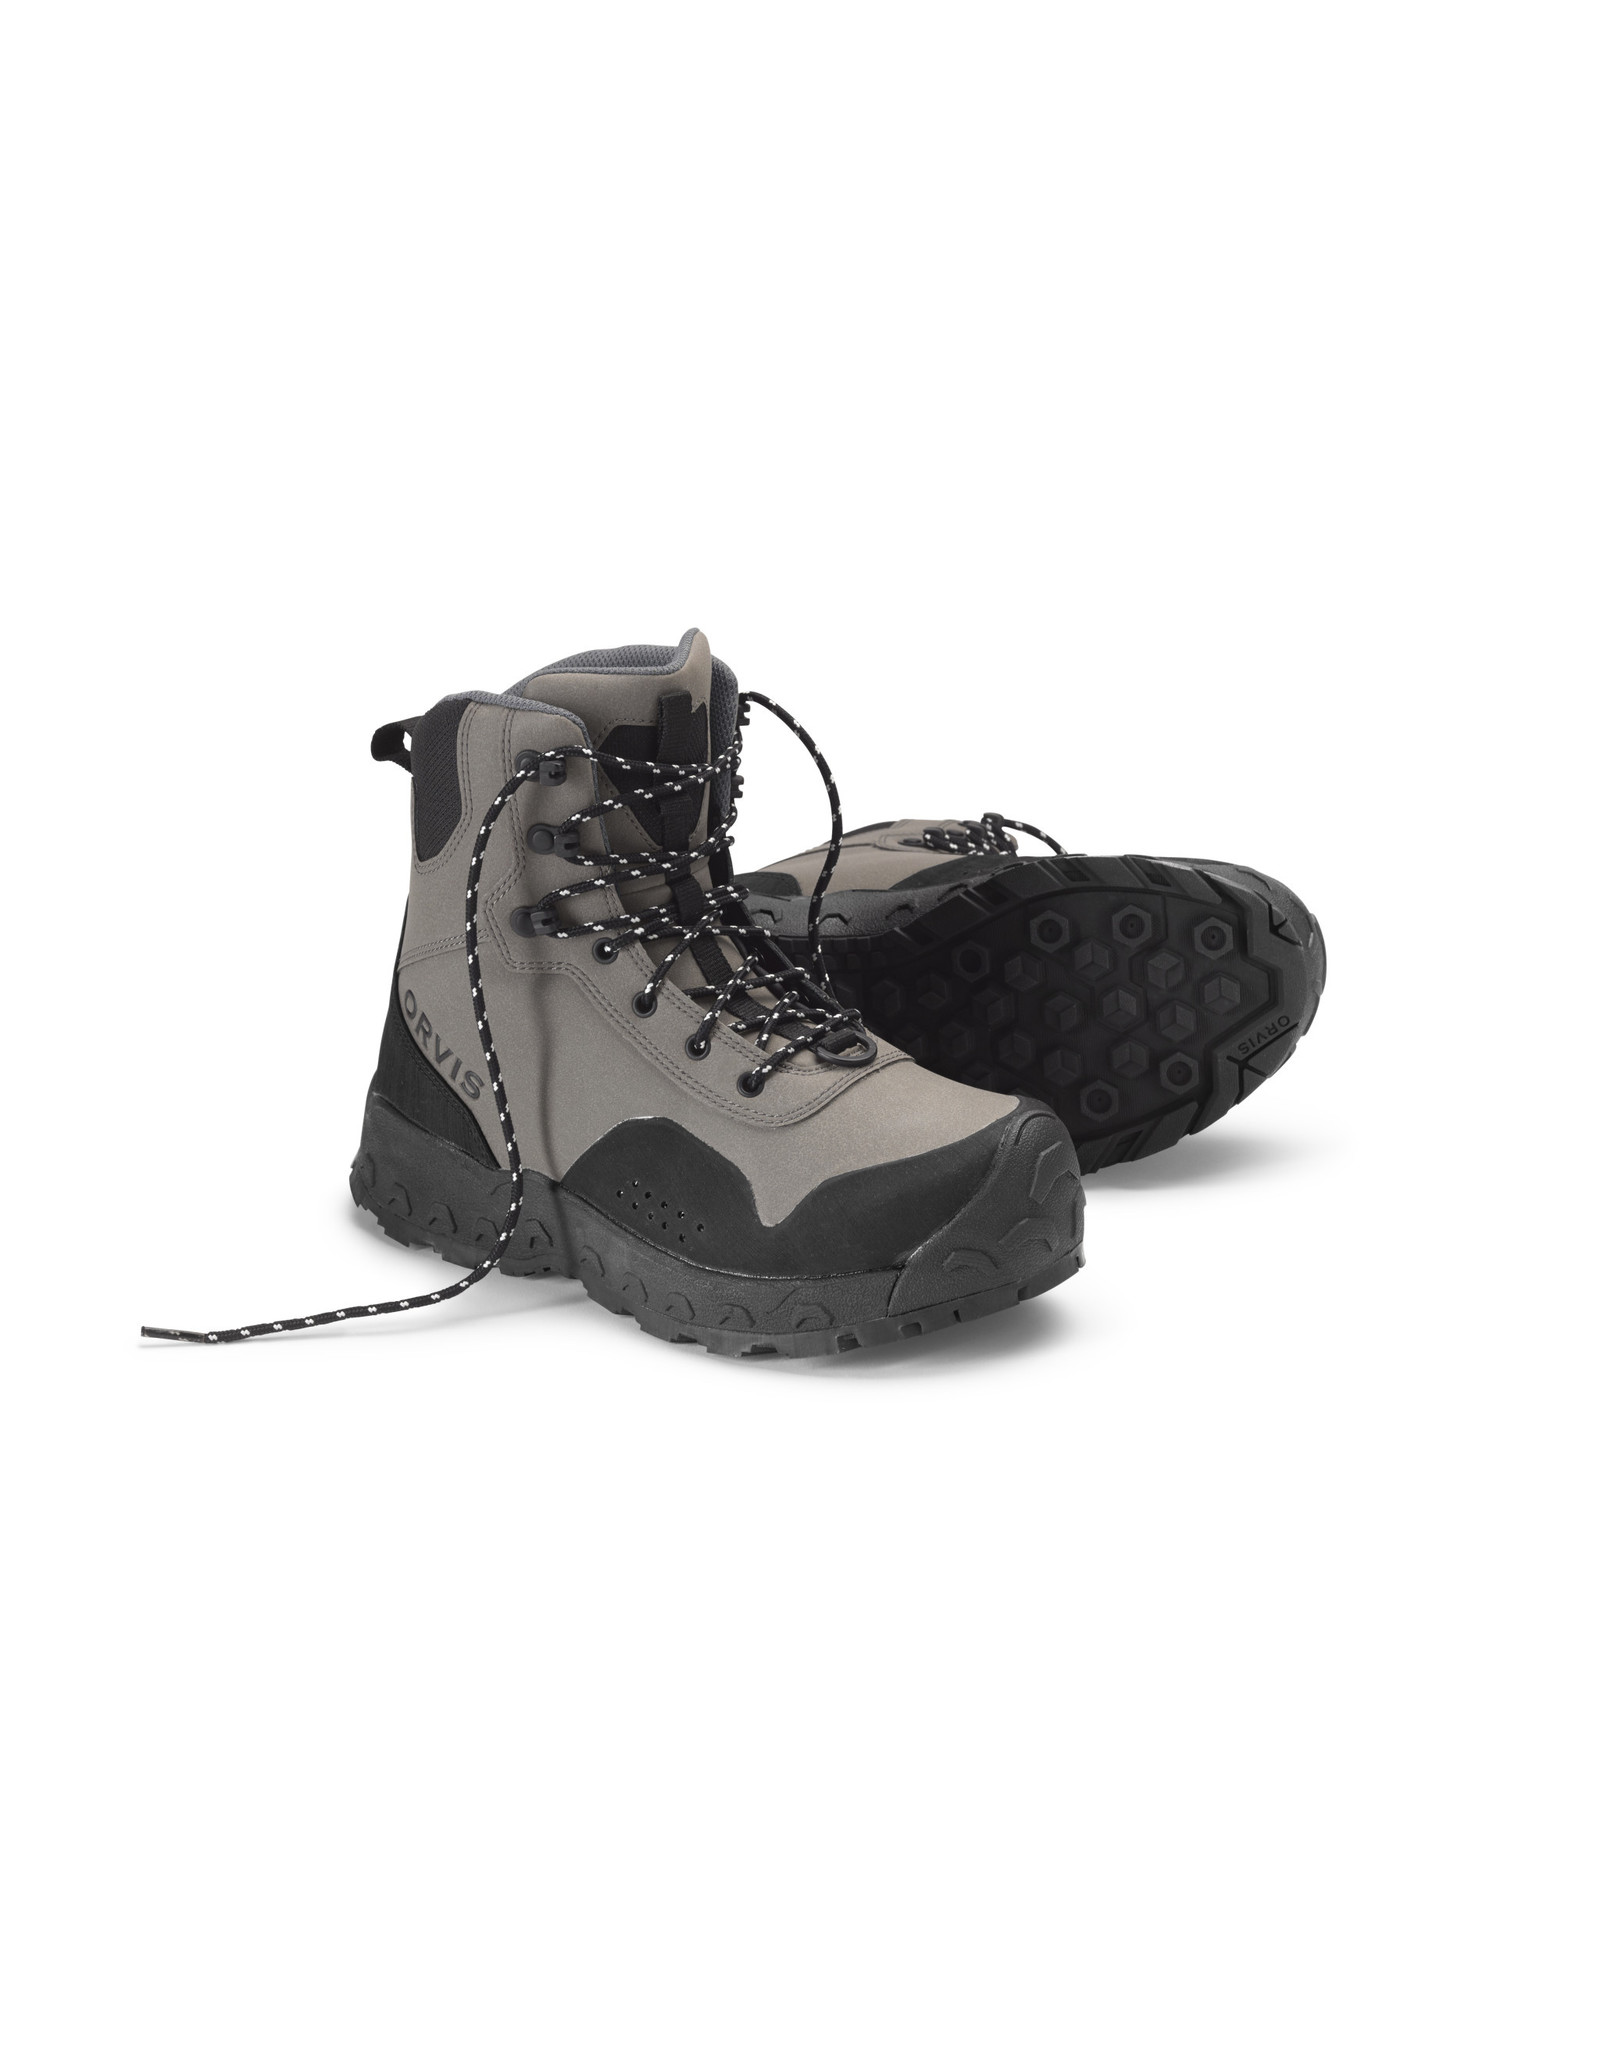 ORVIS Women's Clearwater Wading Boots - Rubber Sole